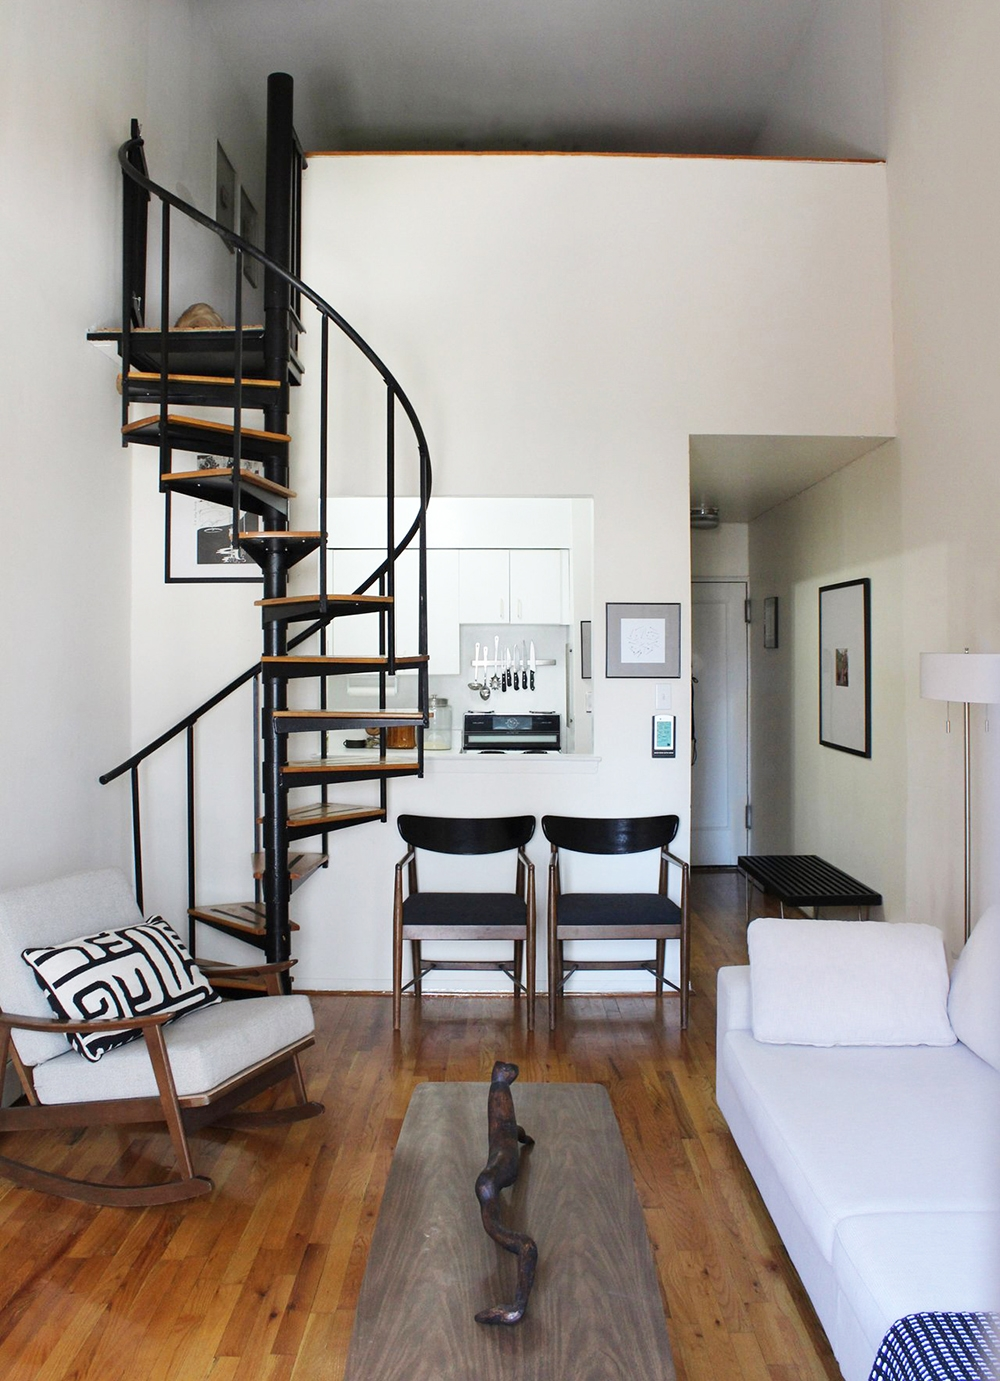 Space Saving Staircases Room For Tuesday Blog | Staircase For Small House | Indoor | Cupboard | Narrow | Duplex | Square